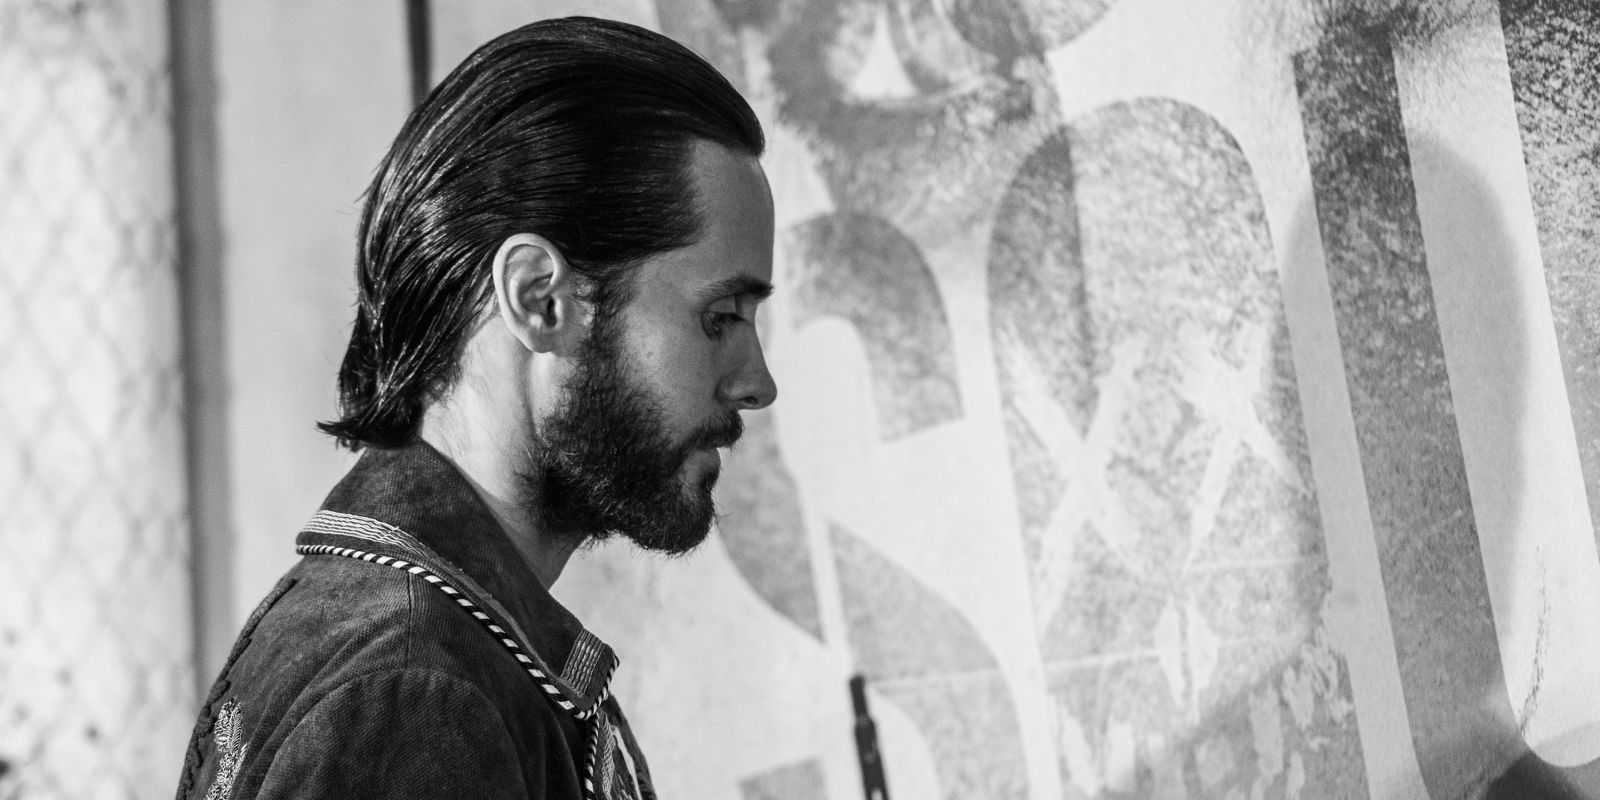 ELLE's interview met acteur en muzikant Jared Leto